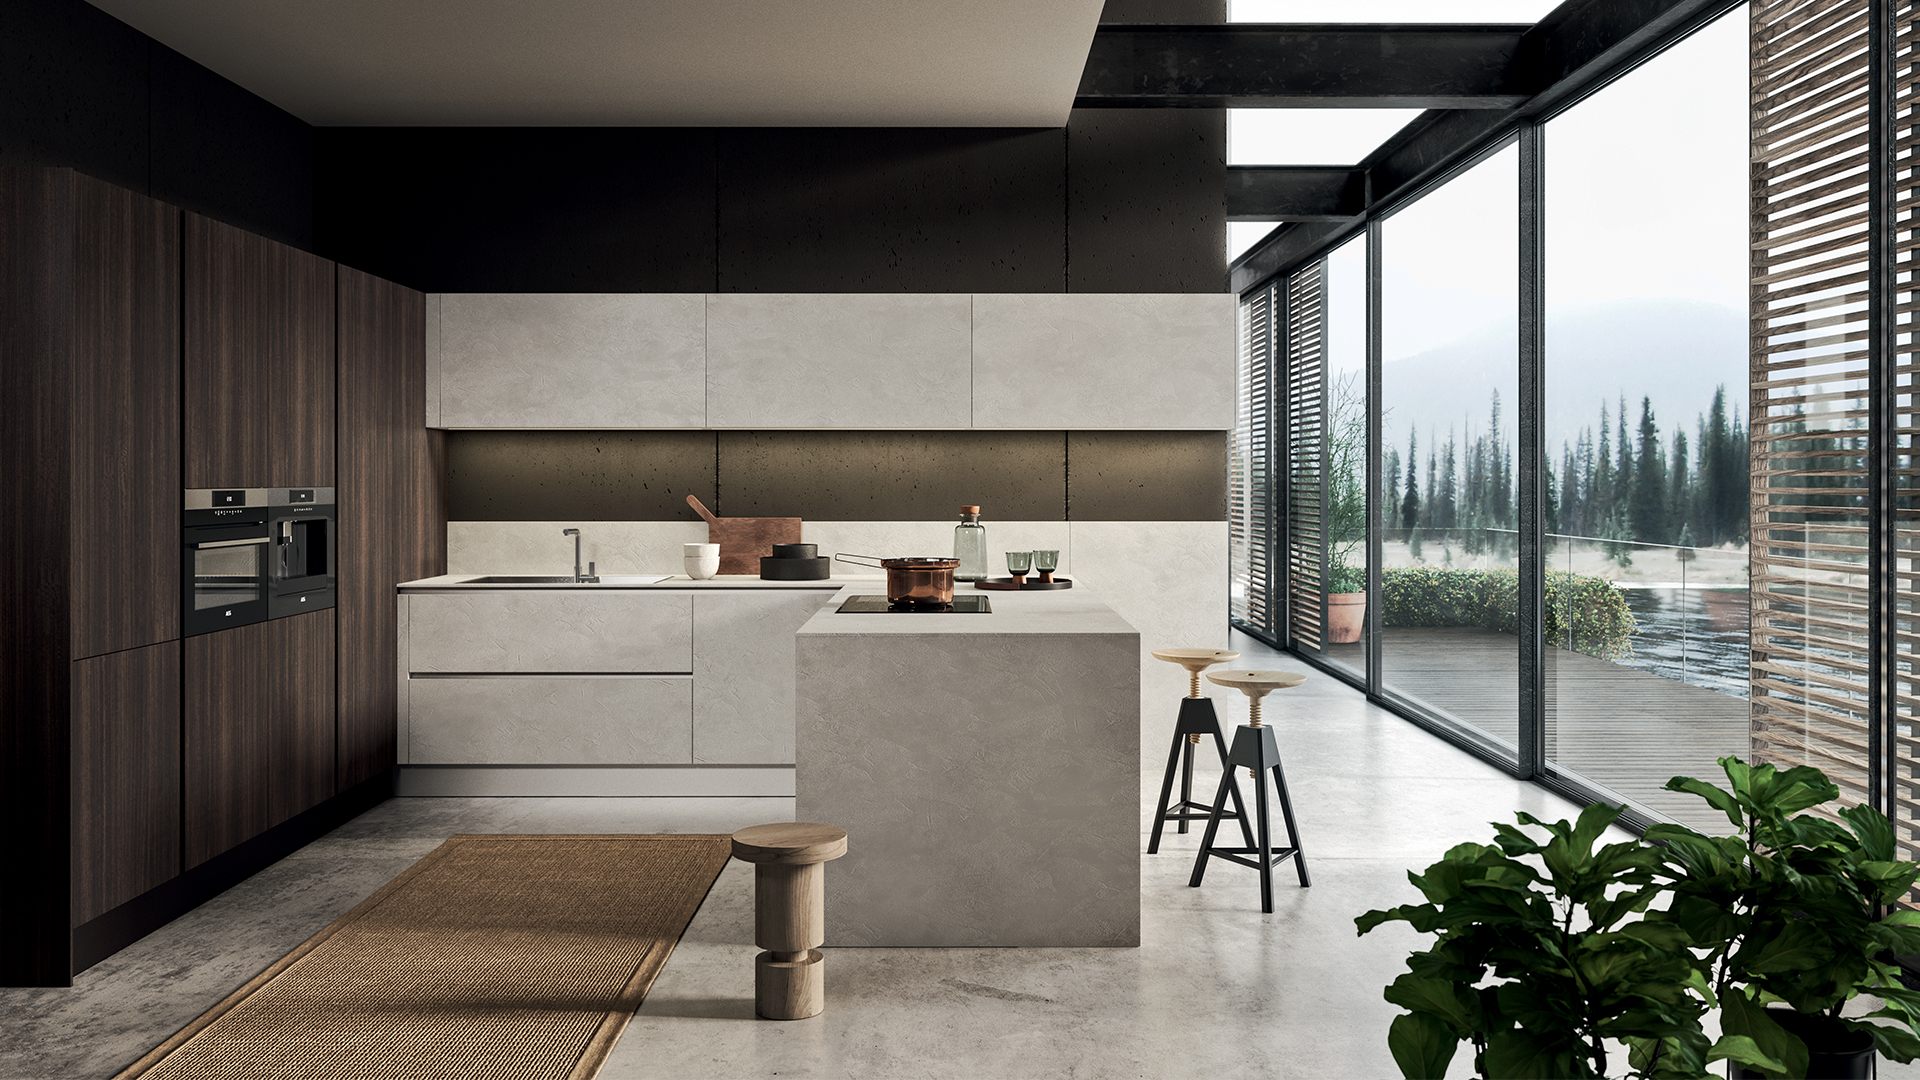 Pedini – The one stop shop for your kitchen needs